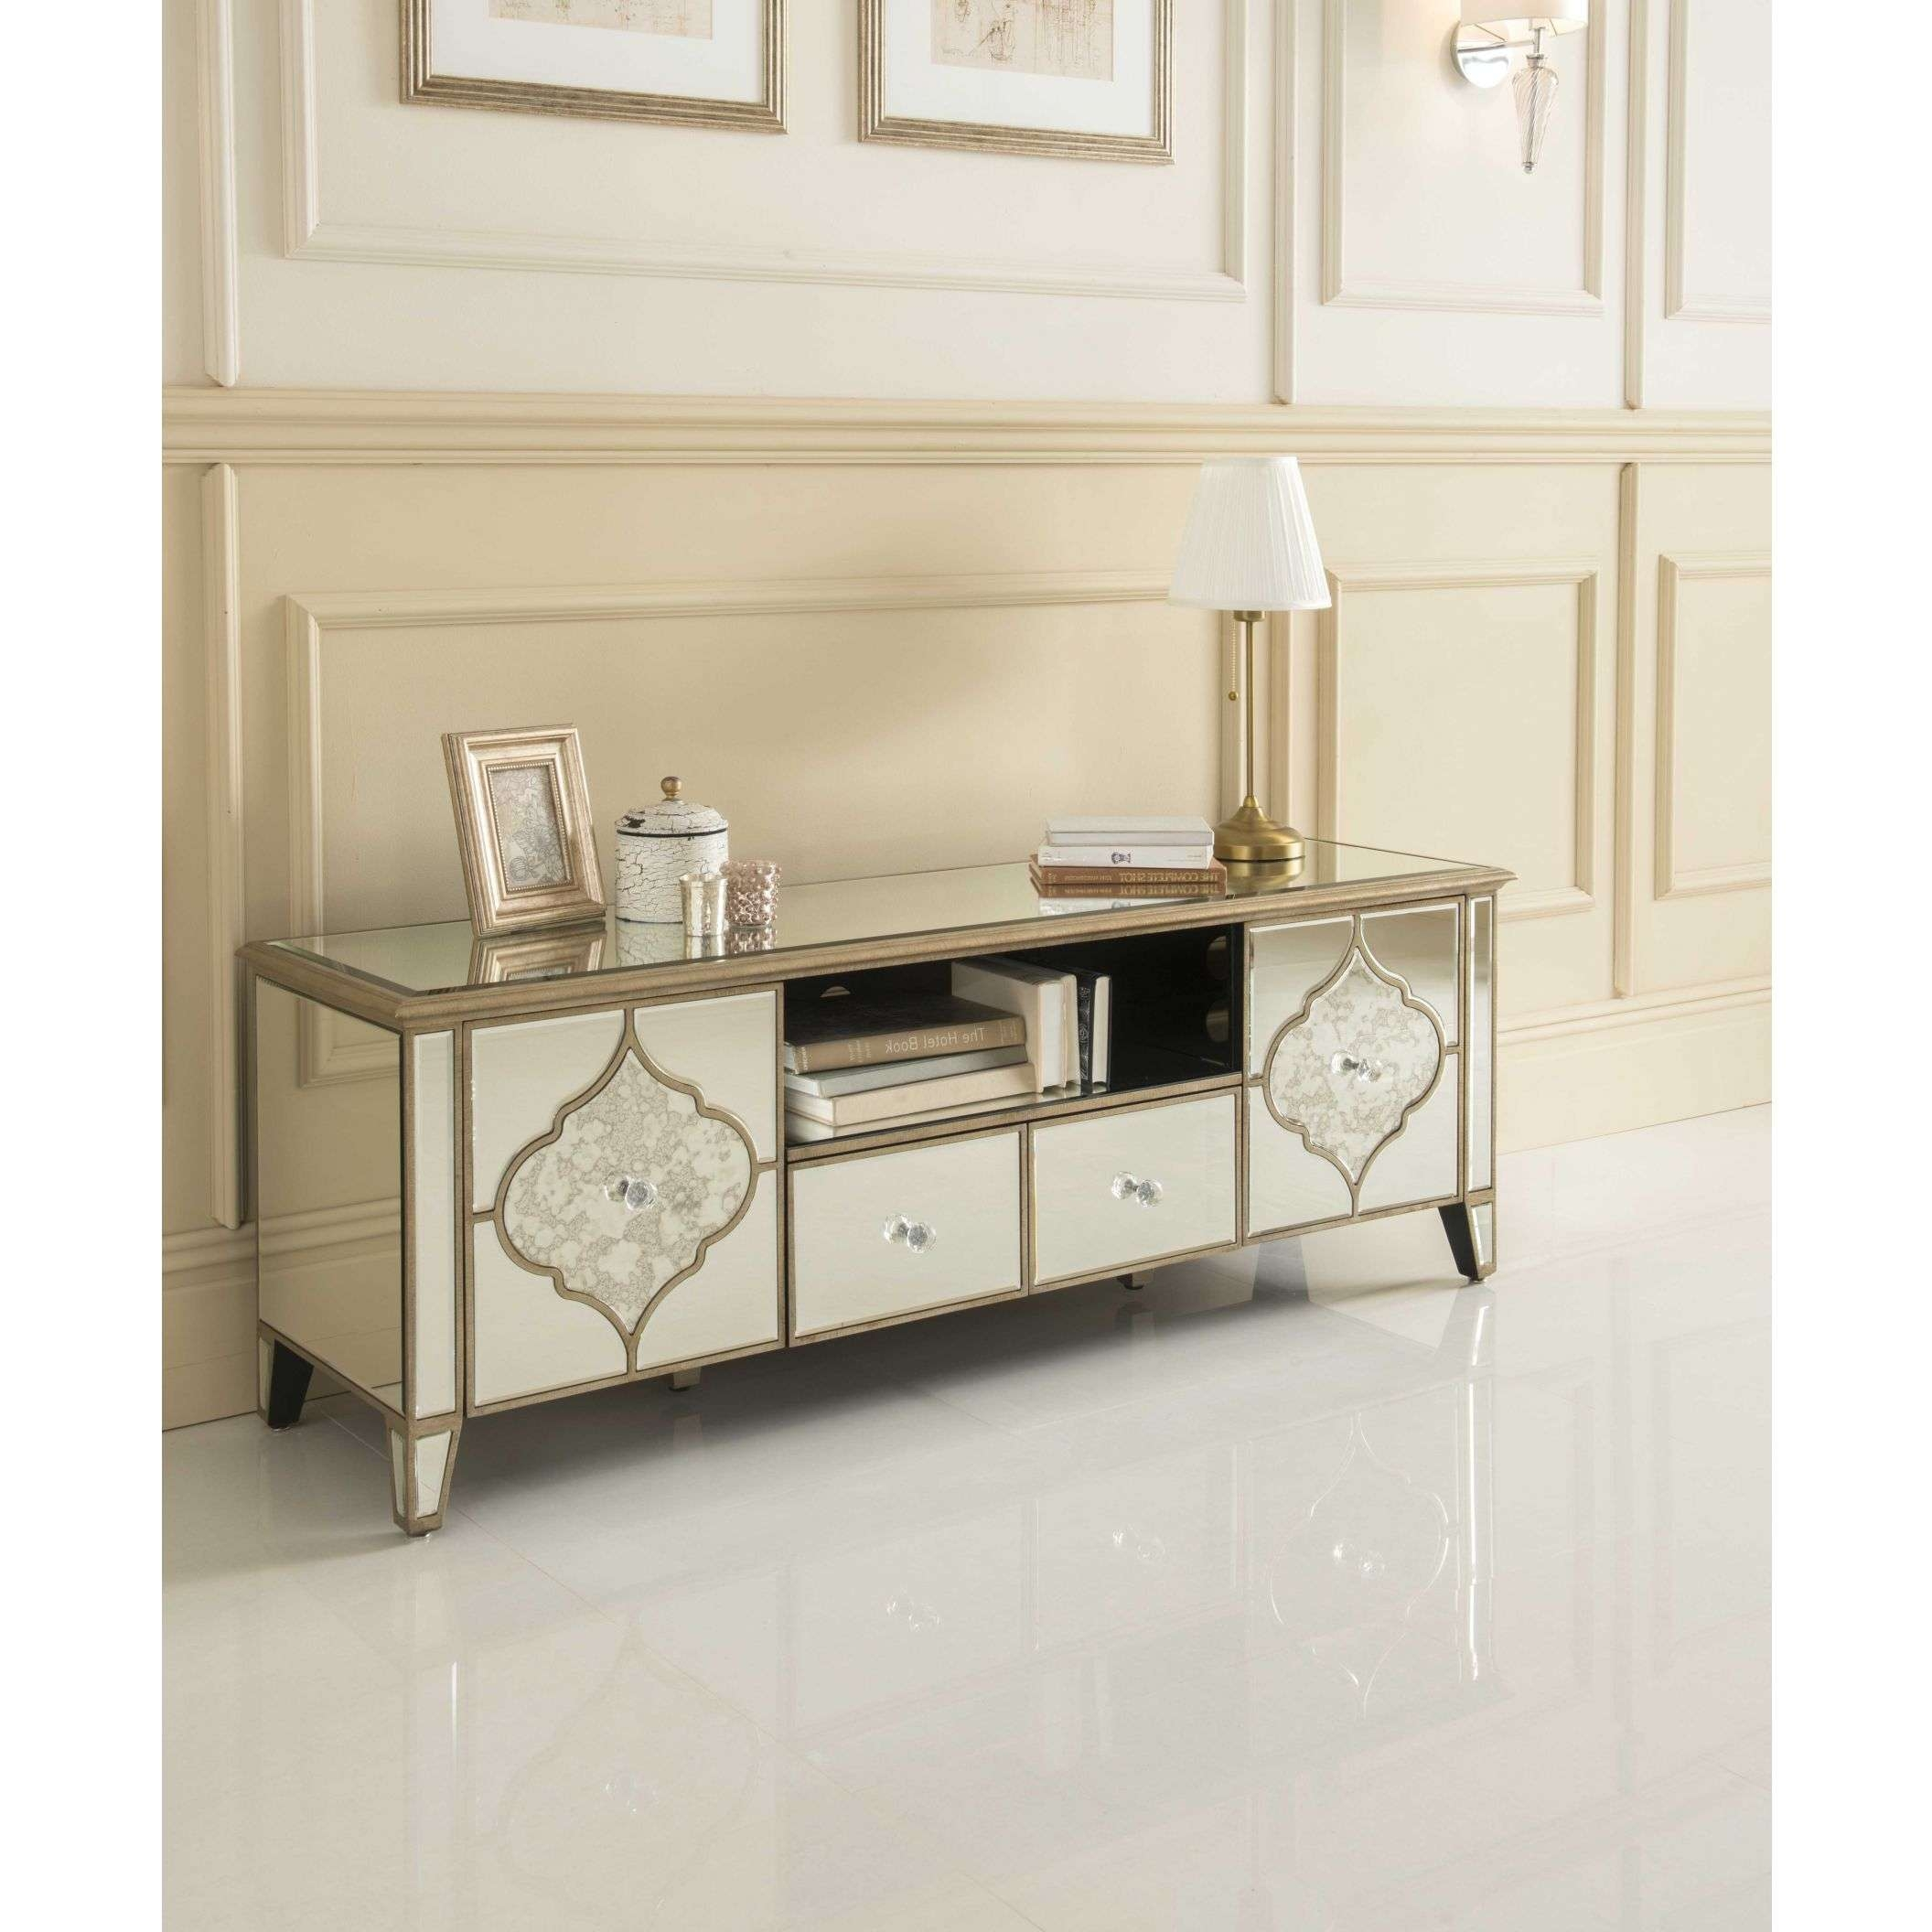 Sassari Mirrored Tv Cabinet | Glass Furniture Intended For Mirror Tv Cabinets (View 16 of 20)